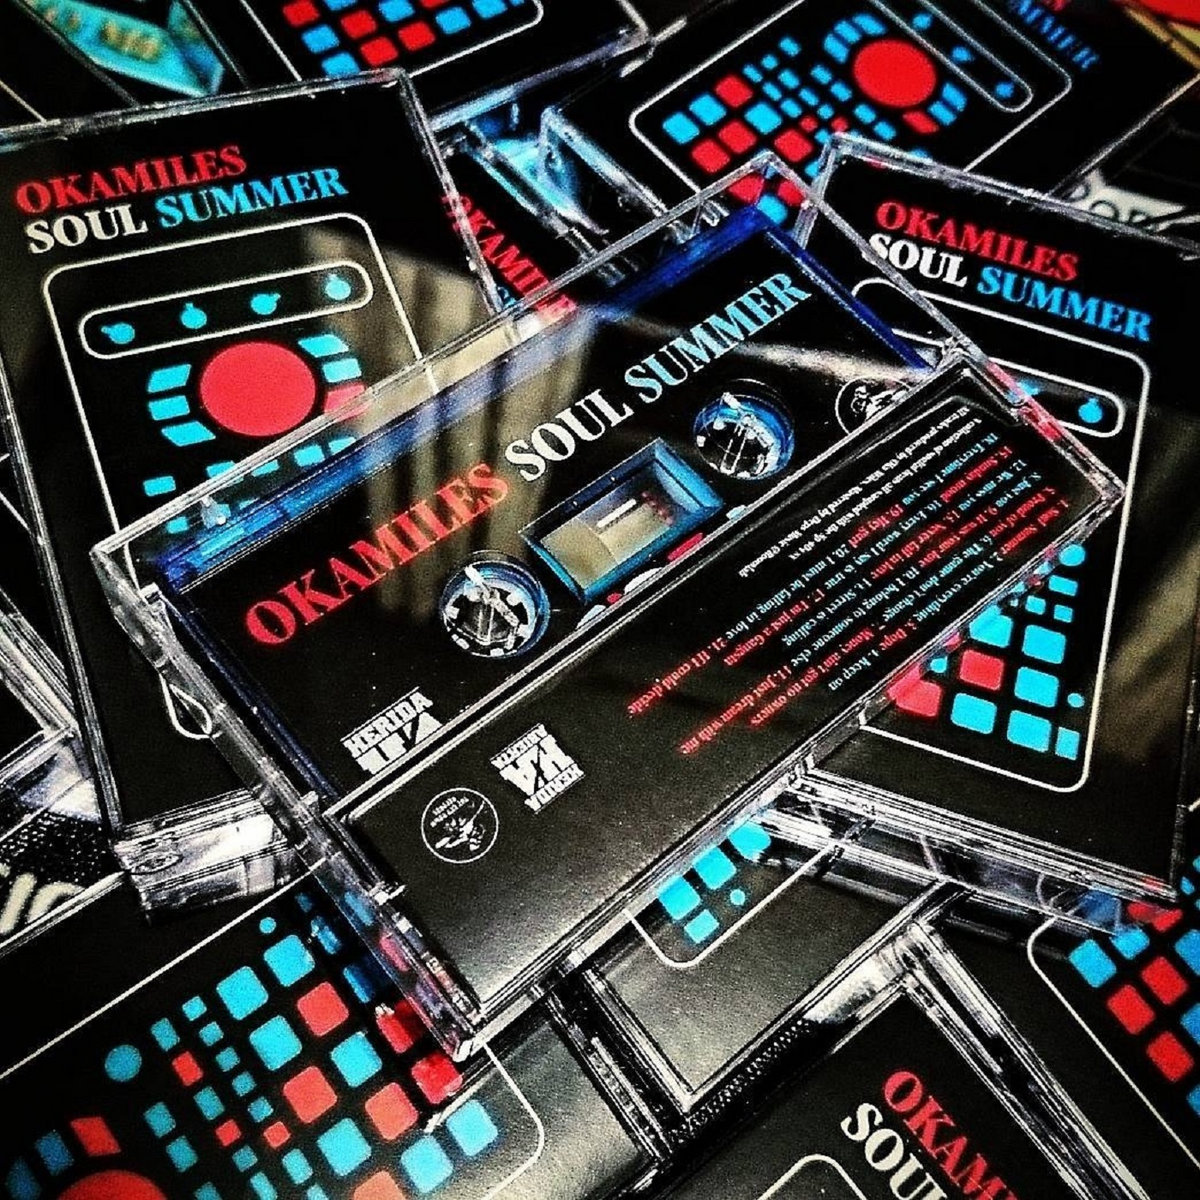 Includes Unlimited Streaming Of Oka Miles Soul Summer Beat Tape Via The Free Bandcamp App Plus High Quality Download In Mp Flac And More